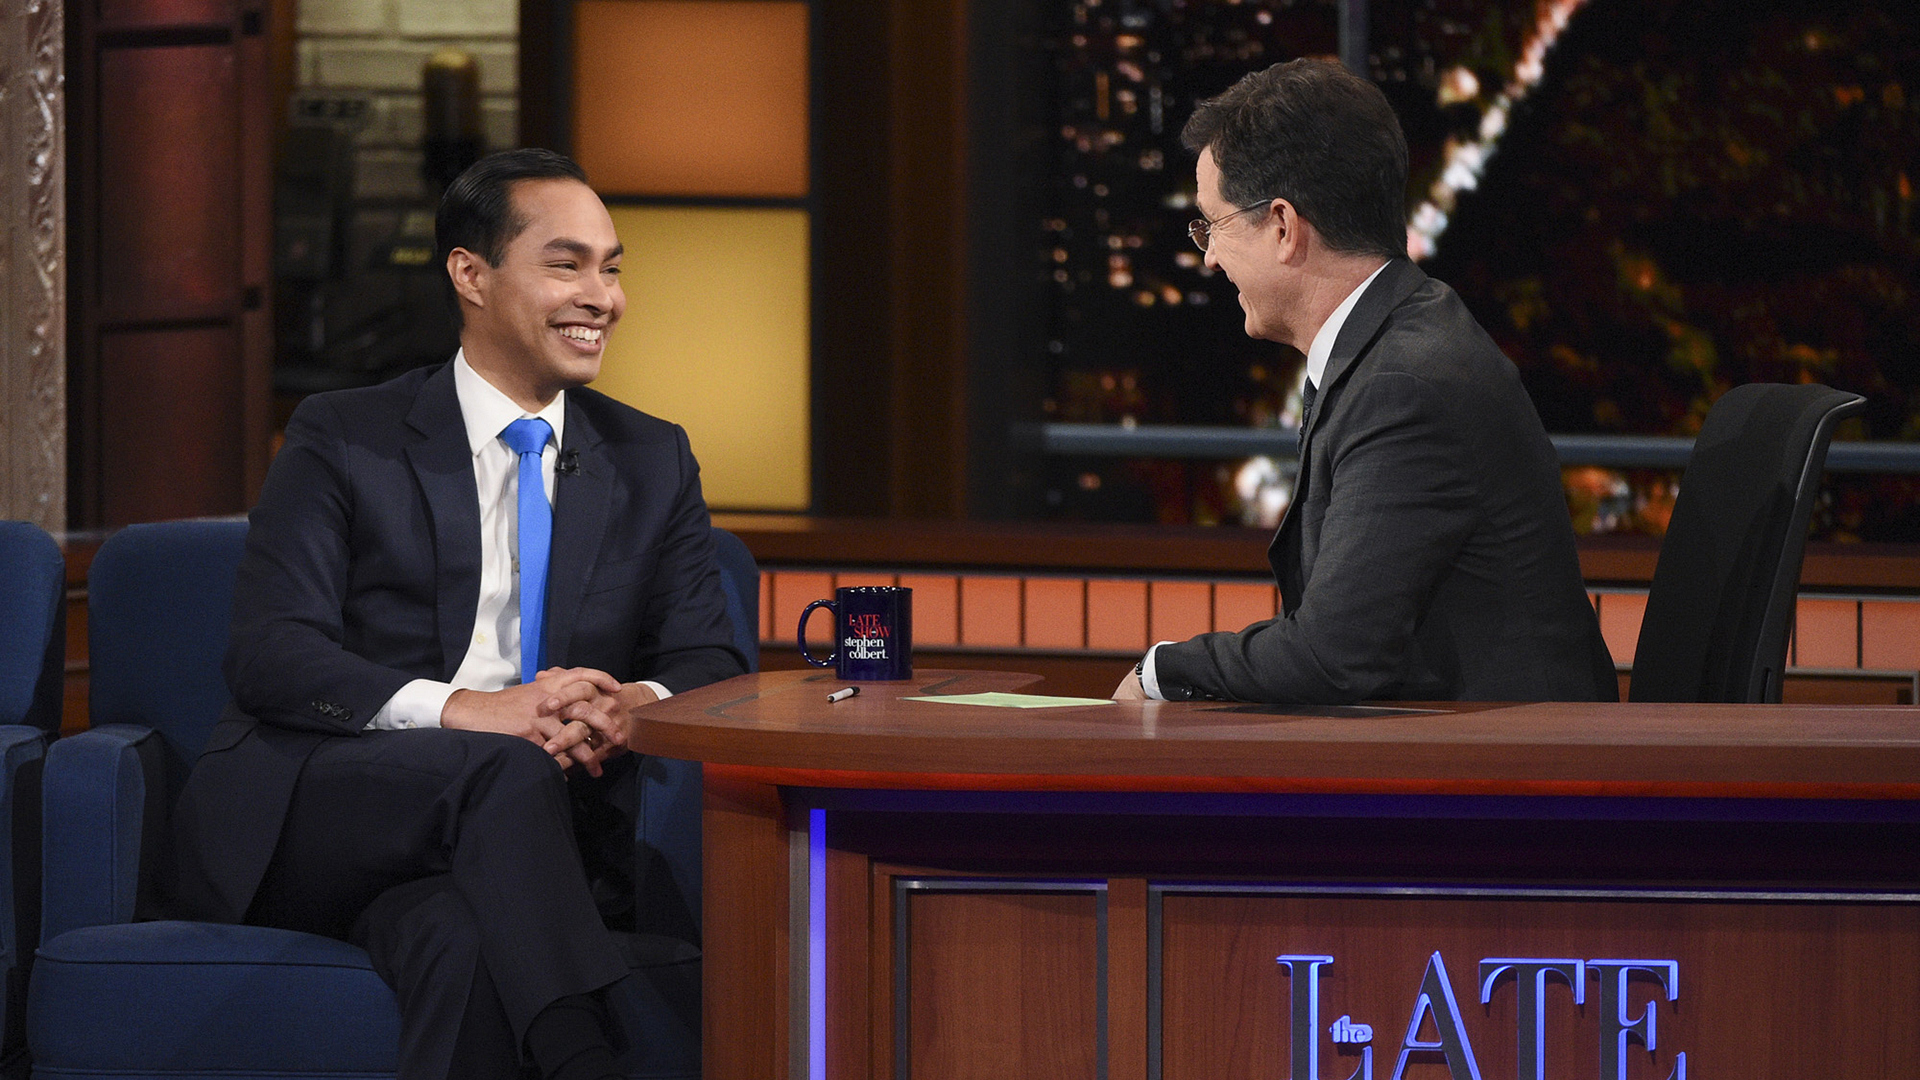 Julian Castro and Stephen Colbert